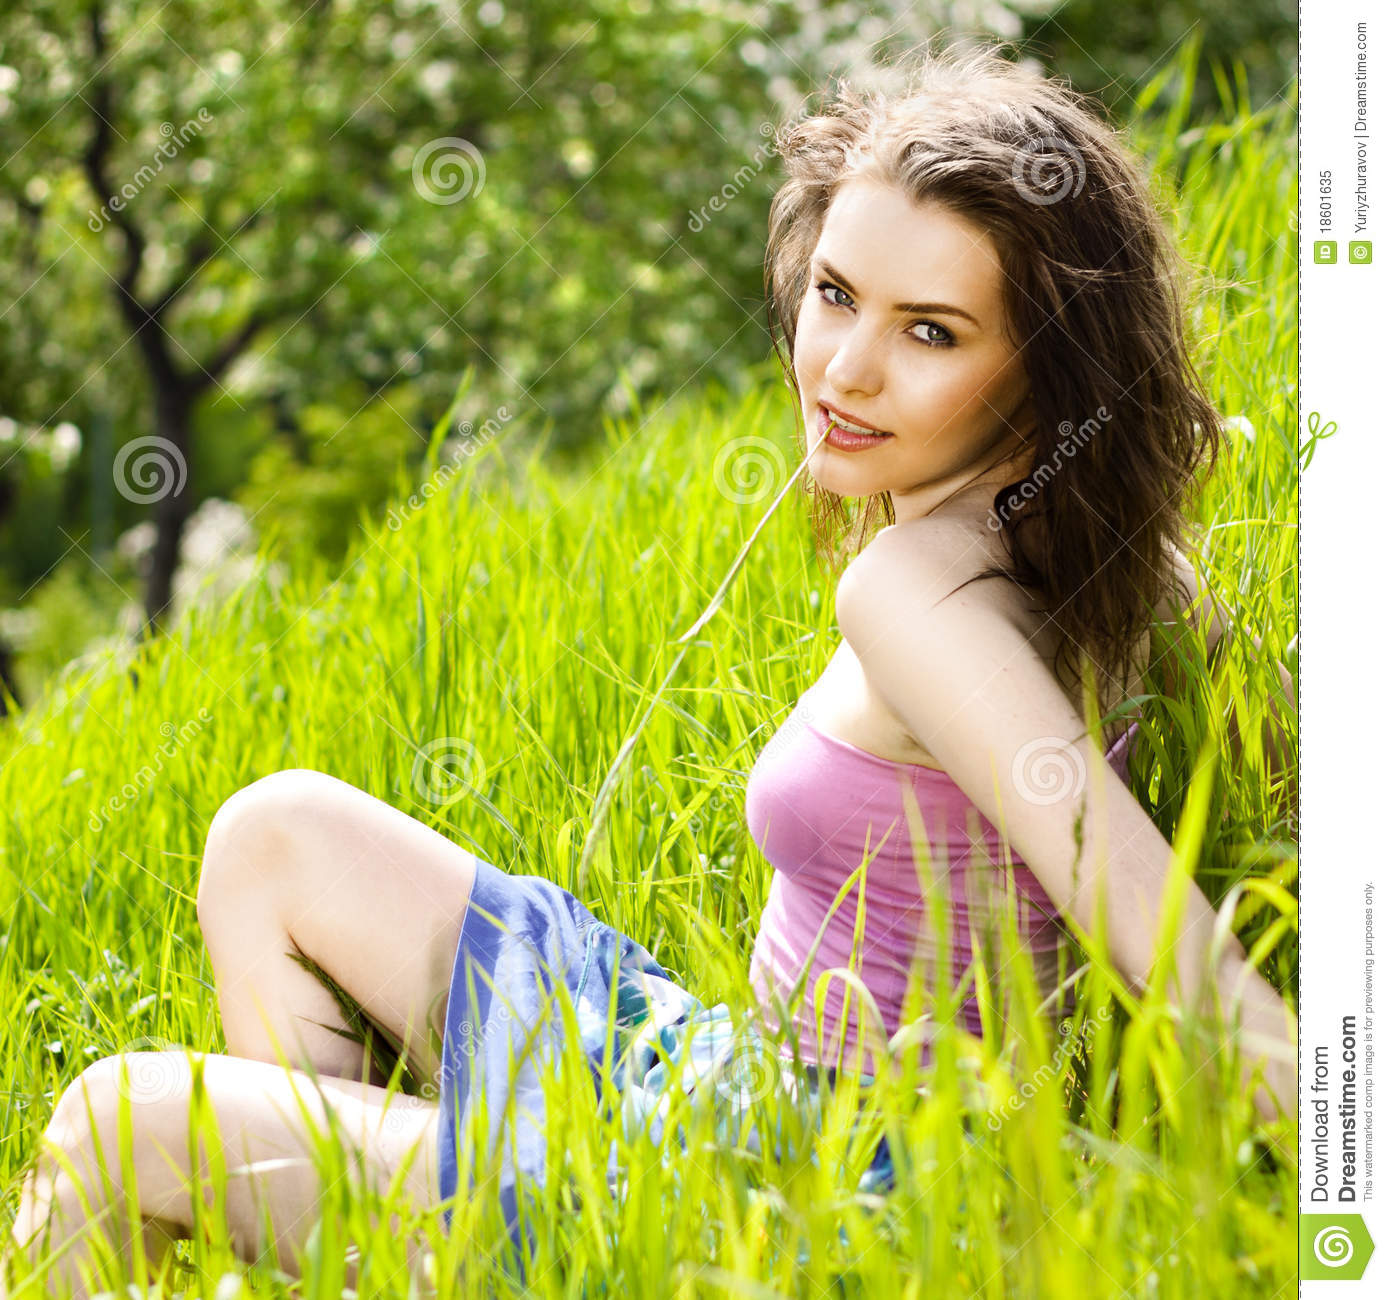 Beautiful Young Woman Relaxing In The Grass Stock Image